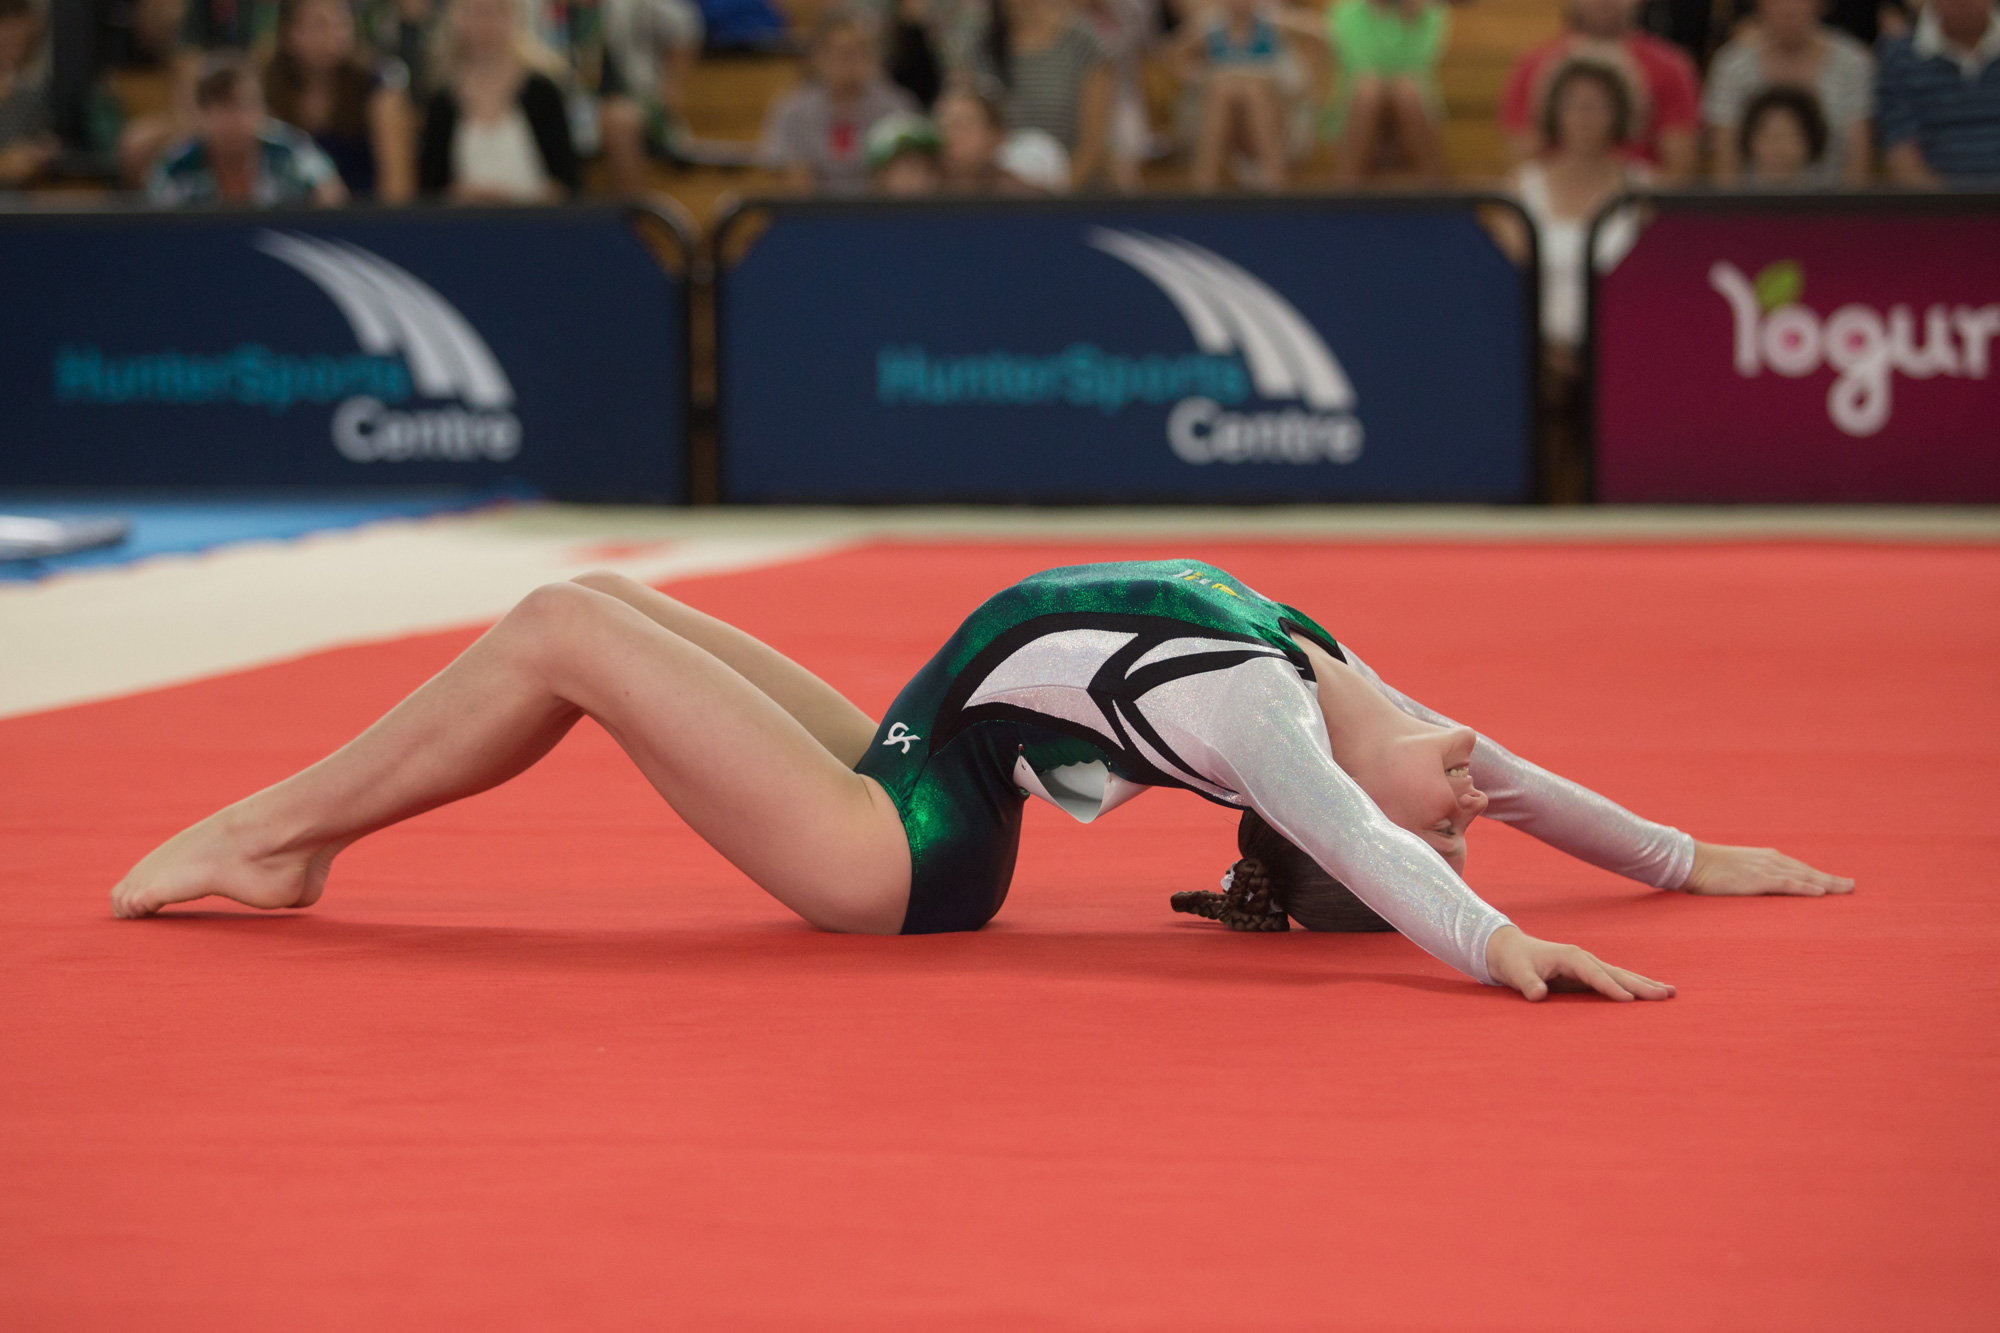 Constructing a level 10 floor routine